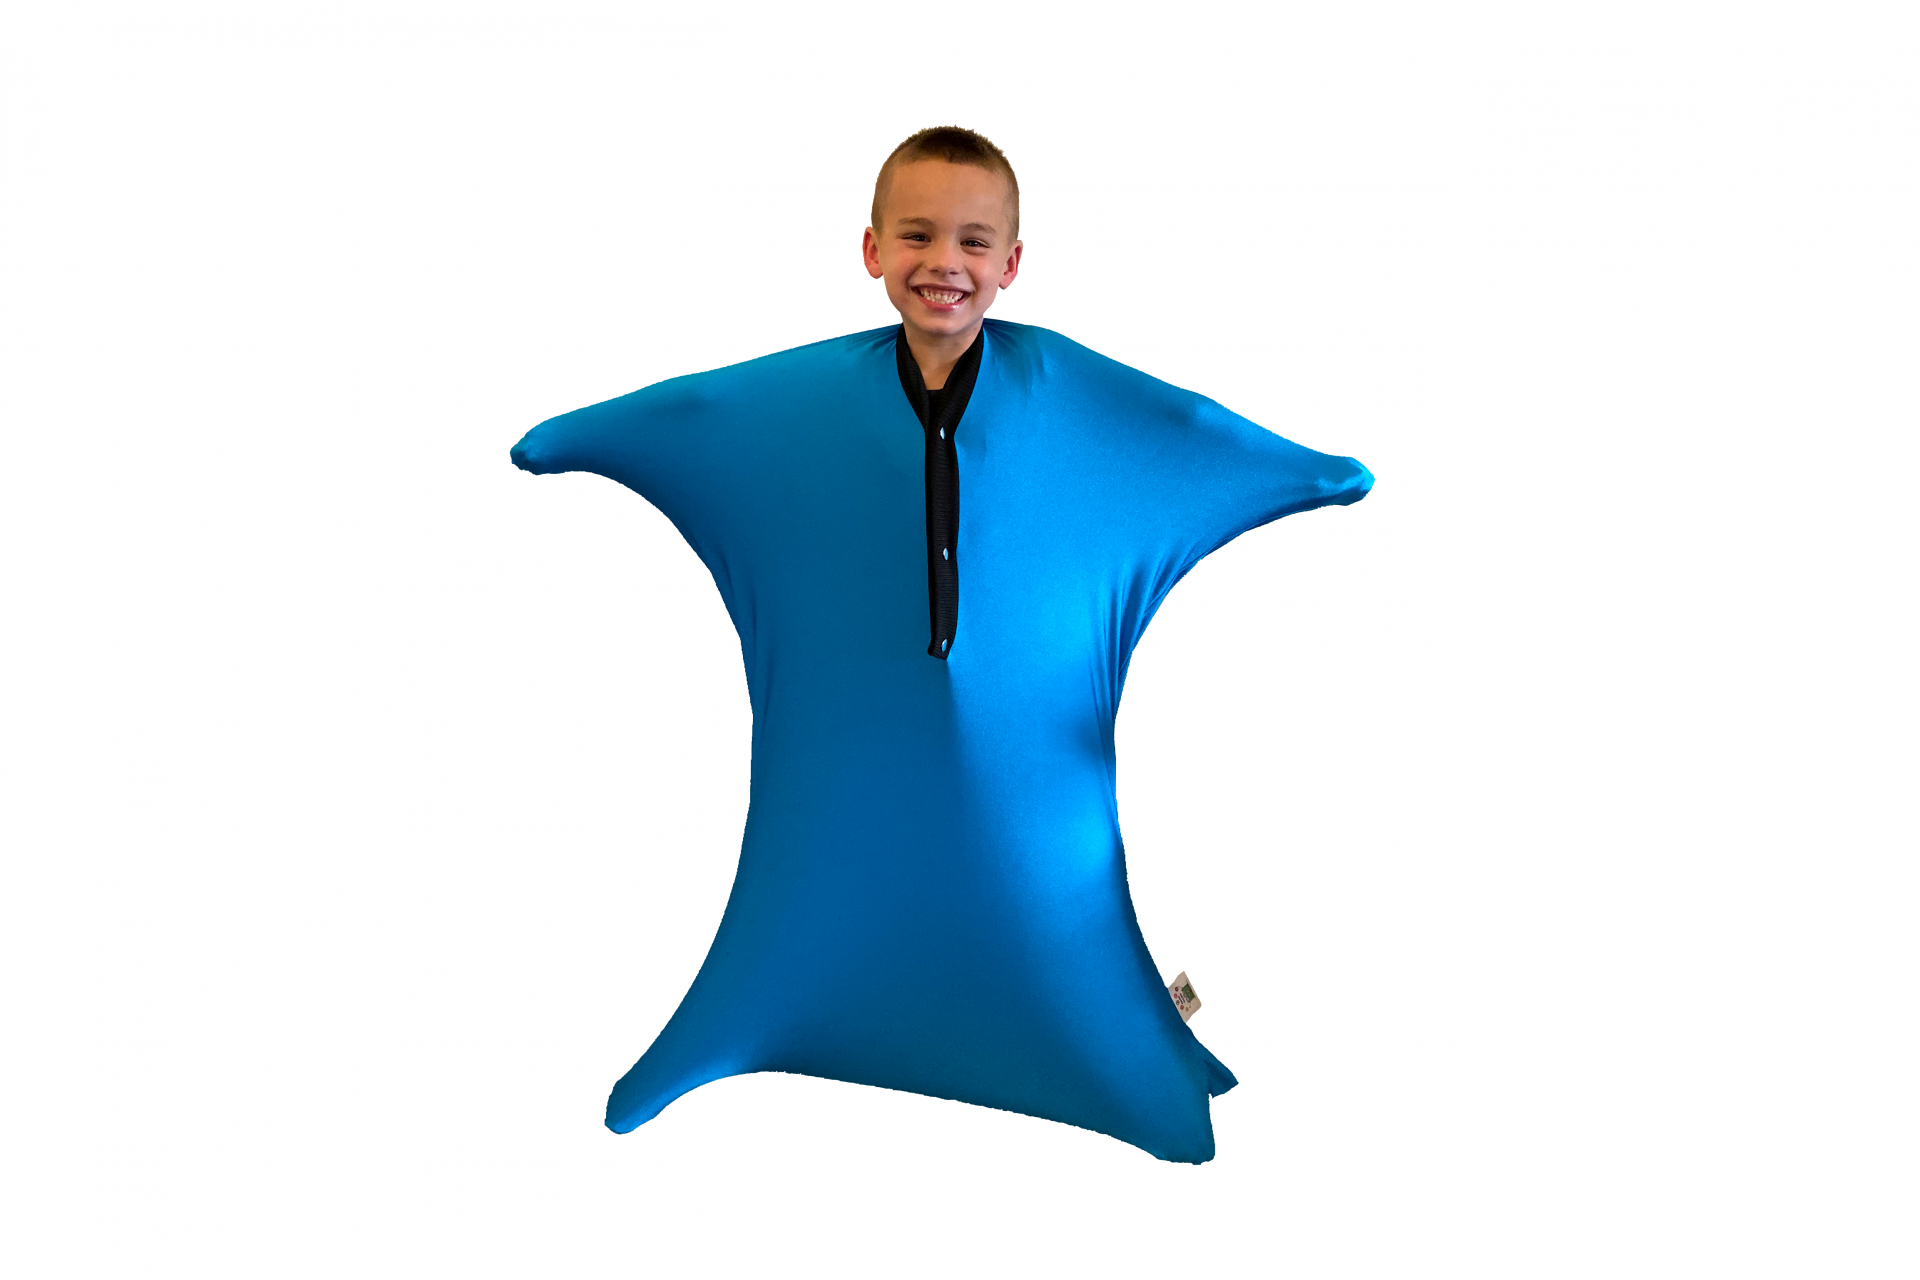 Child in body sock for proprioceptive and tactile sensory input